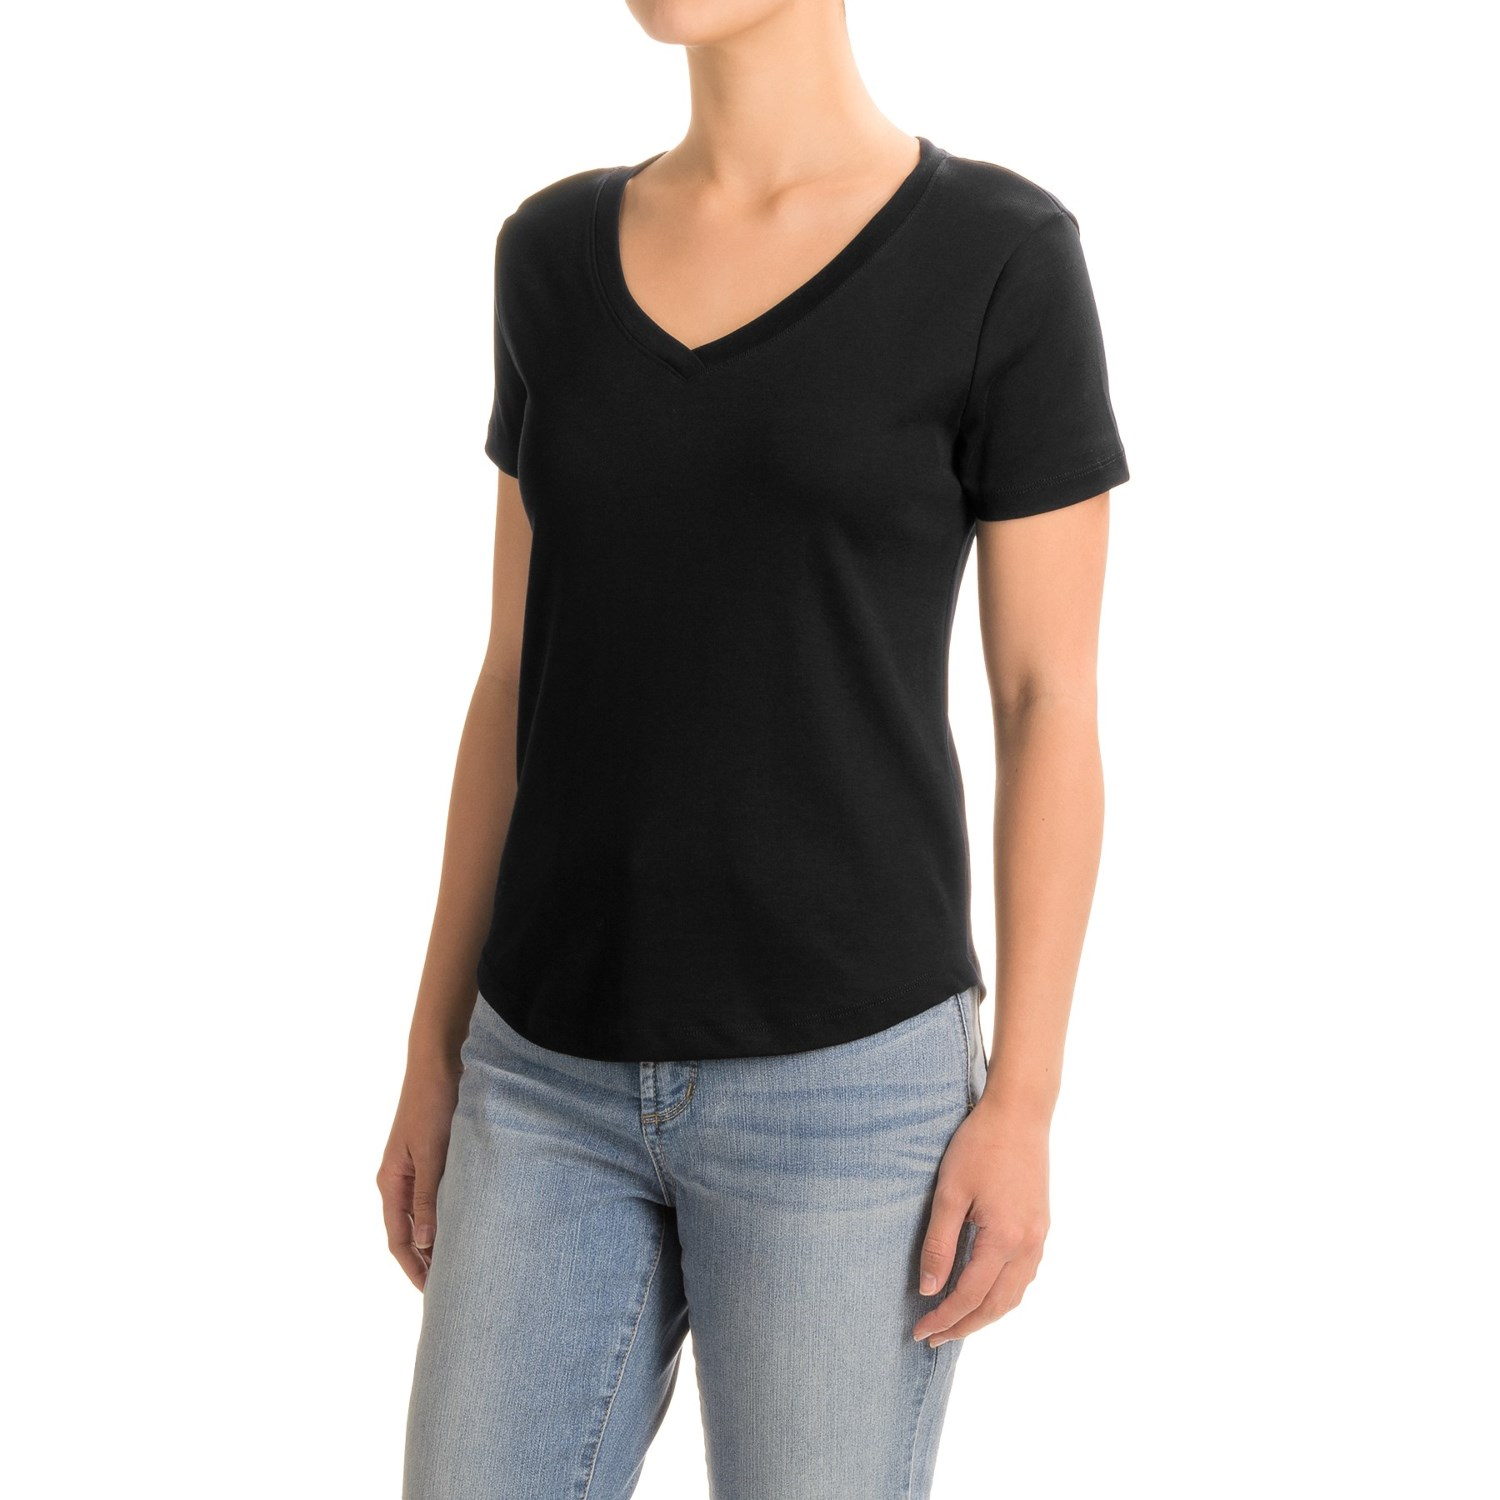 Black t shirts v neck - Workshop Republic Clothing Supima Cotton T Shirt V Neck Short Sleeve